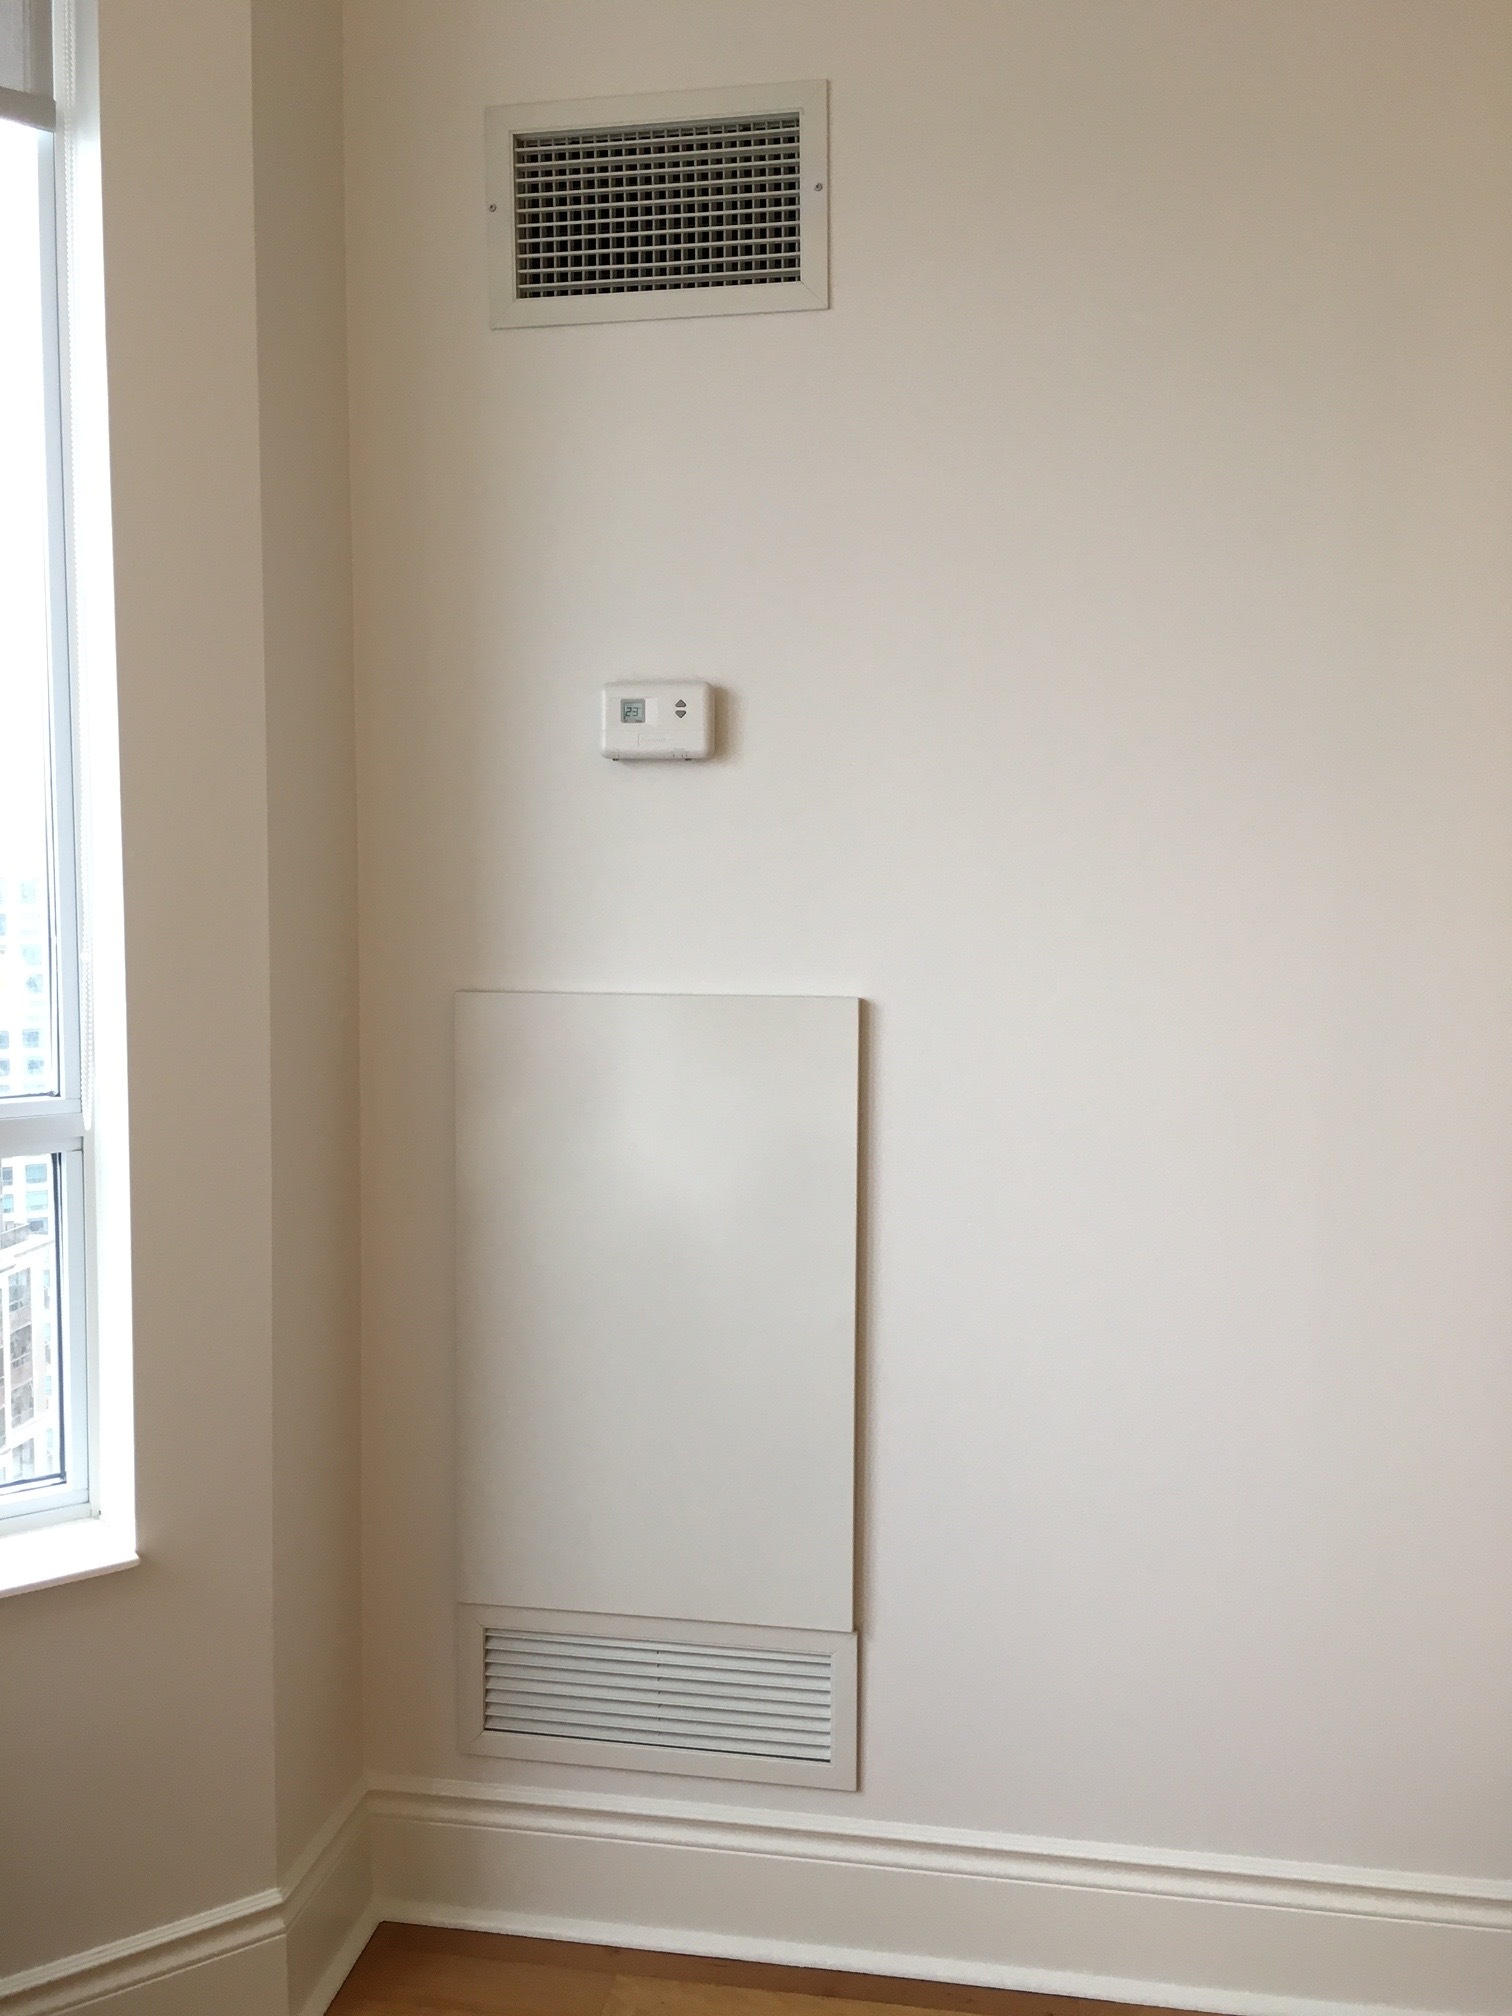 Fan Coil Heating and Cooling Systems in Condos